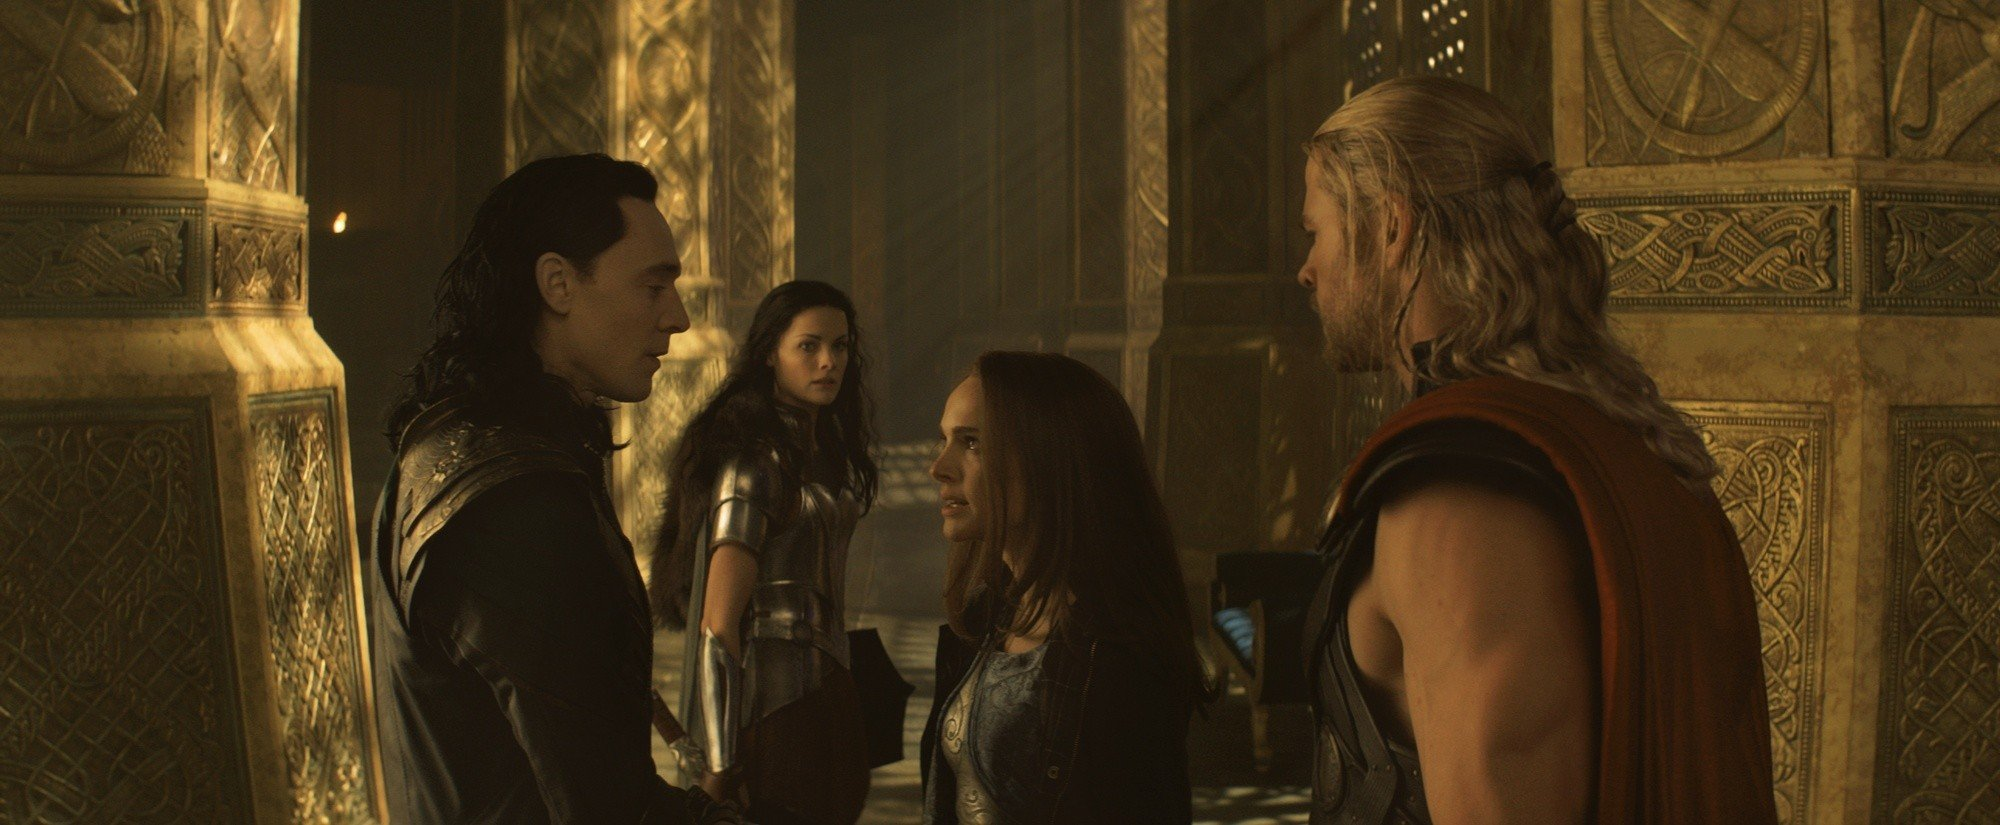 'Thor: The Dark World' Dubbed 'Perfectly Adequate Marvel Movie' in Honest Trailer